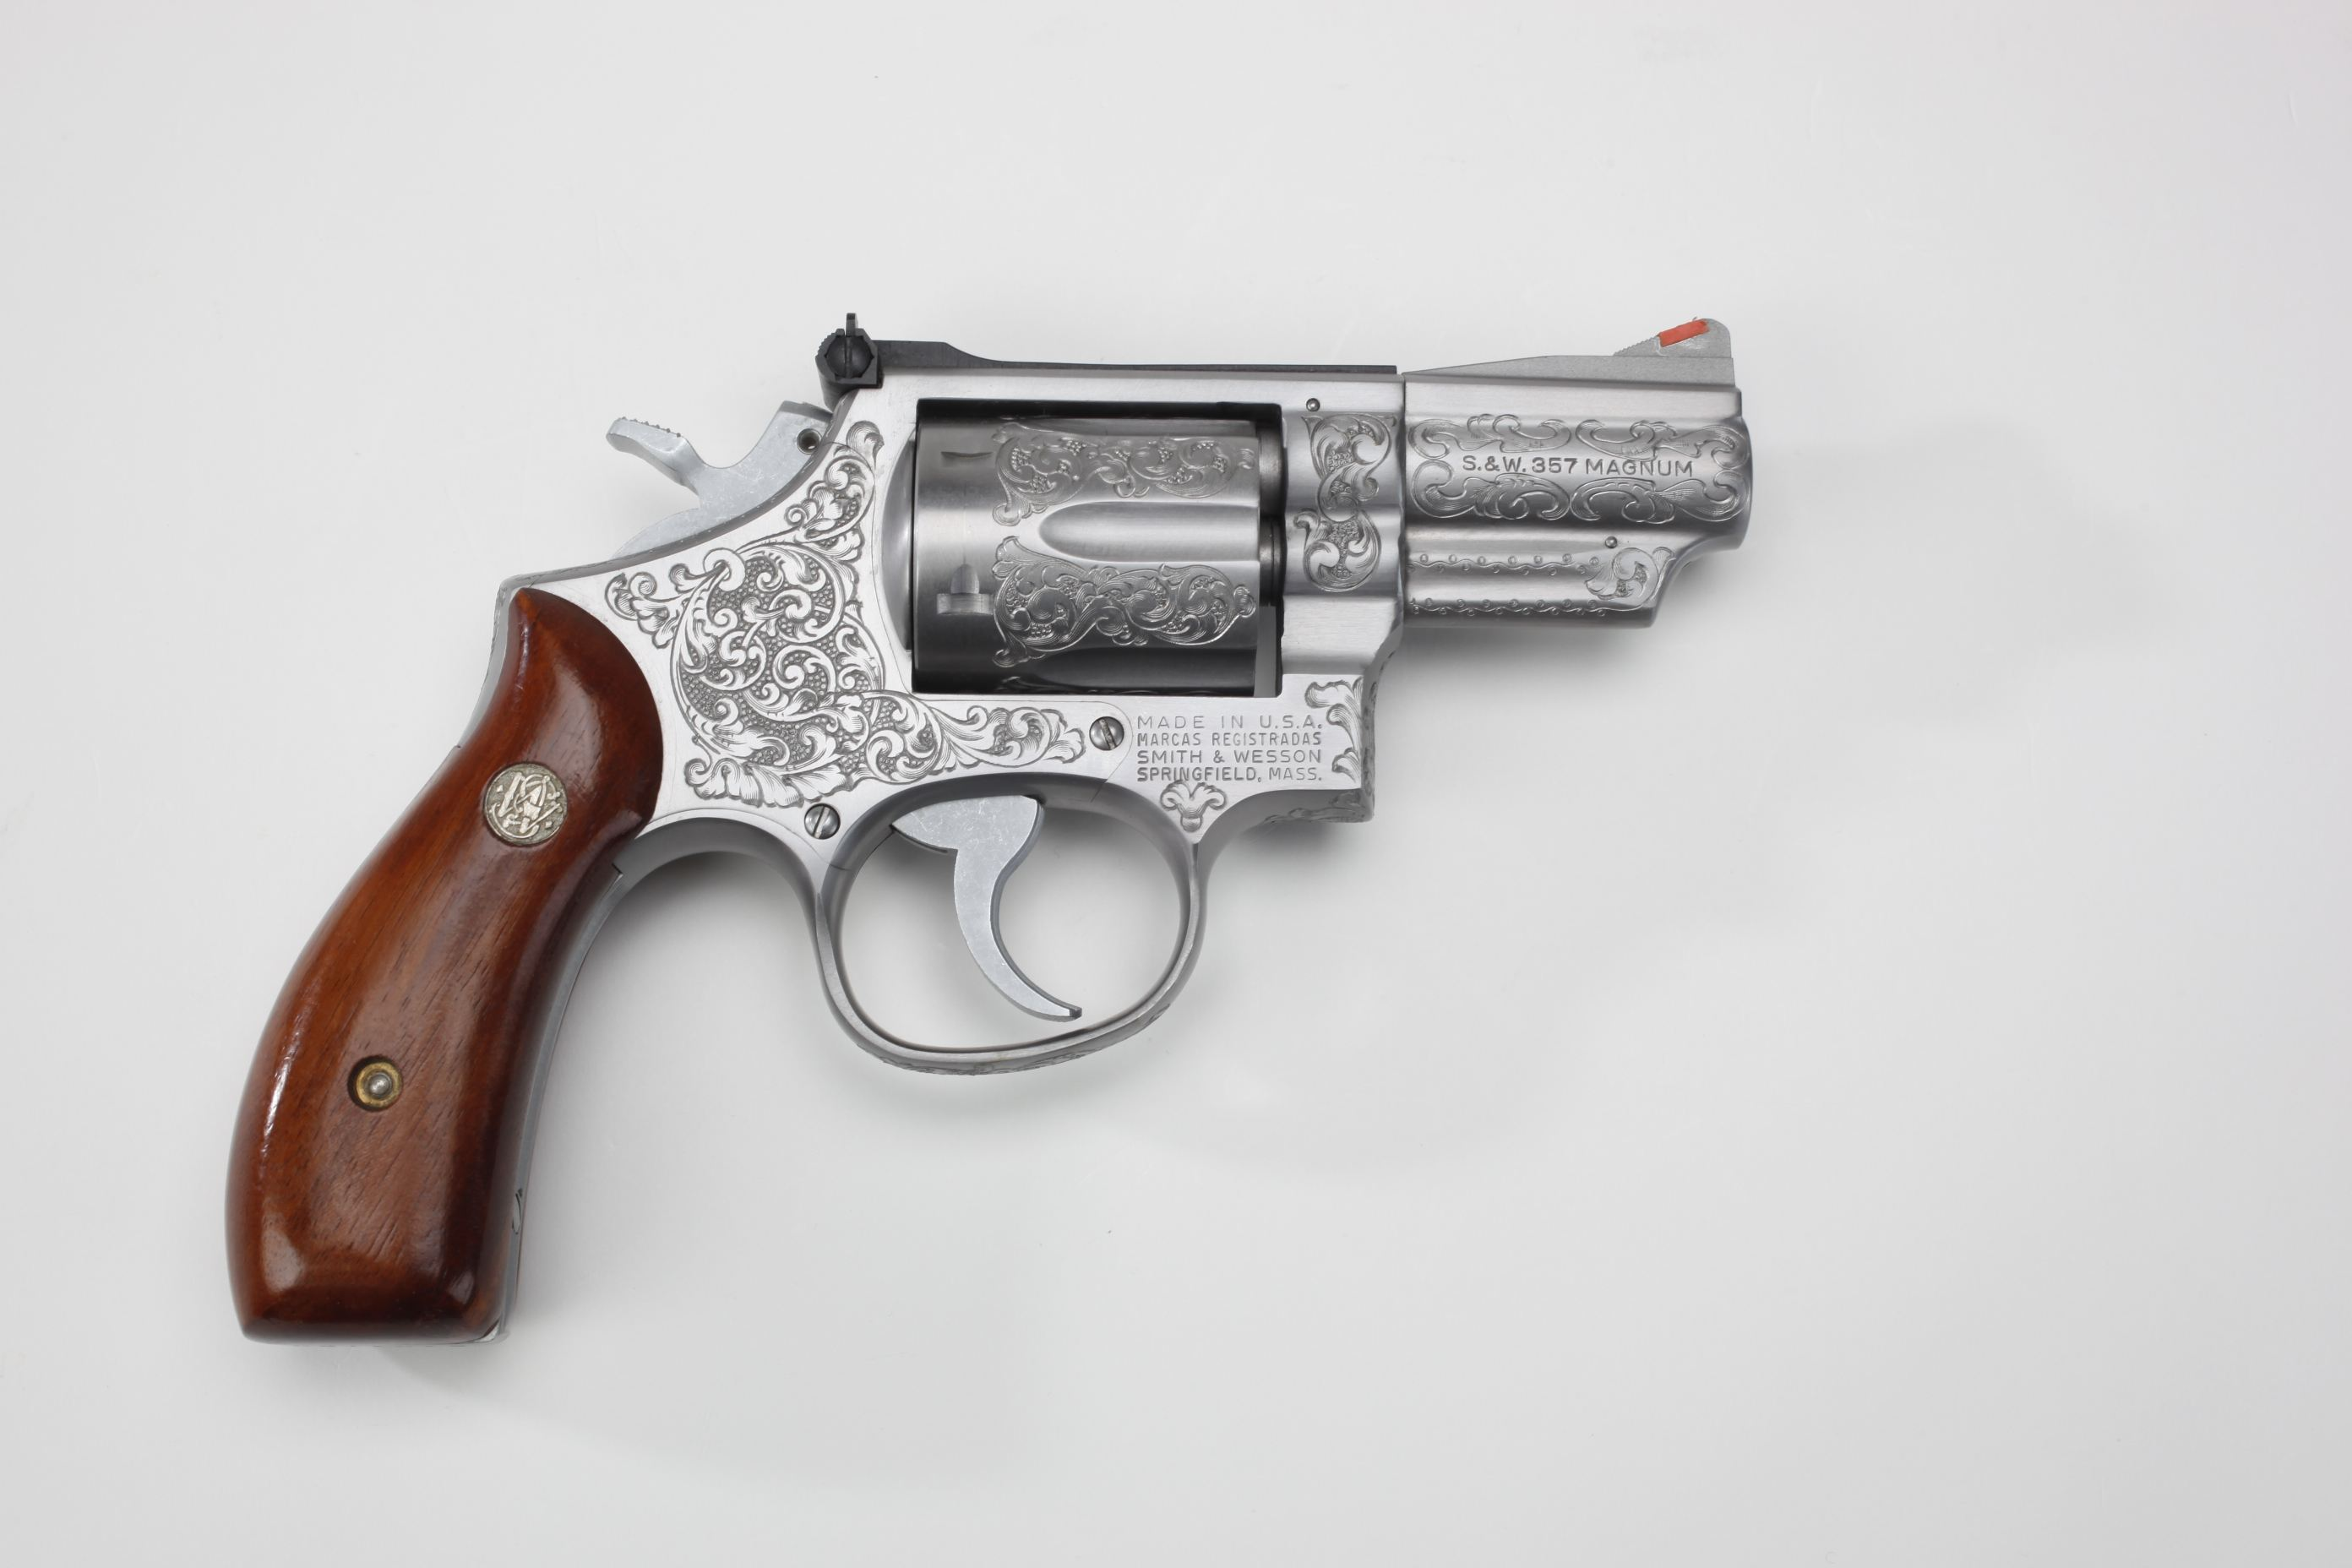 Smith & Wesson Model 66 Double-Action Revolver w/ wood grip panels